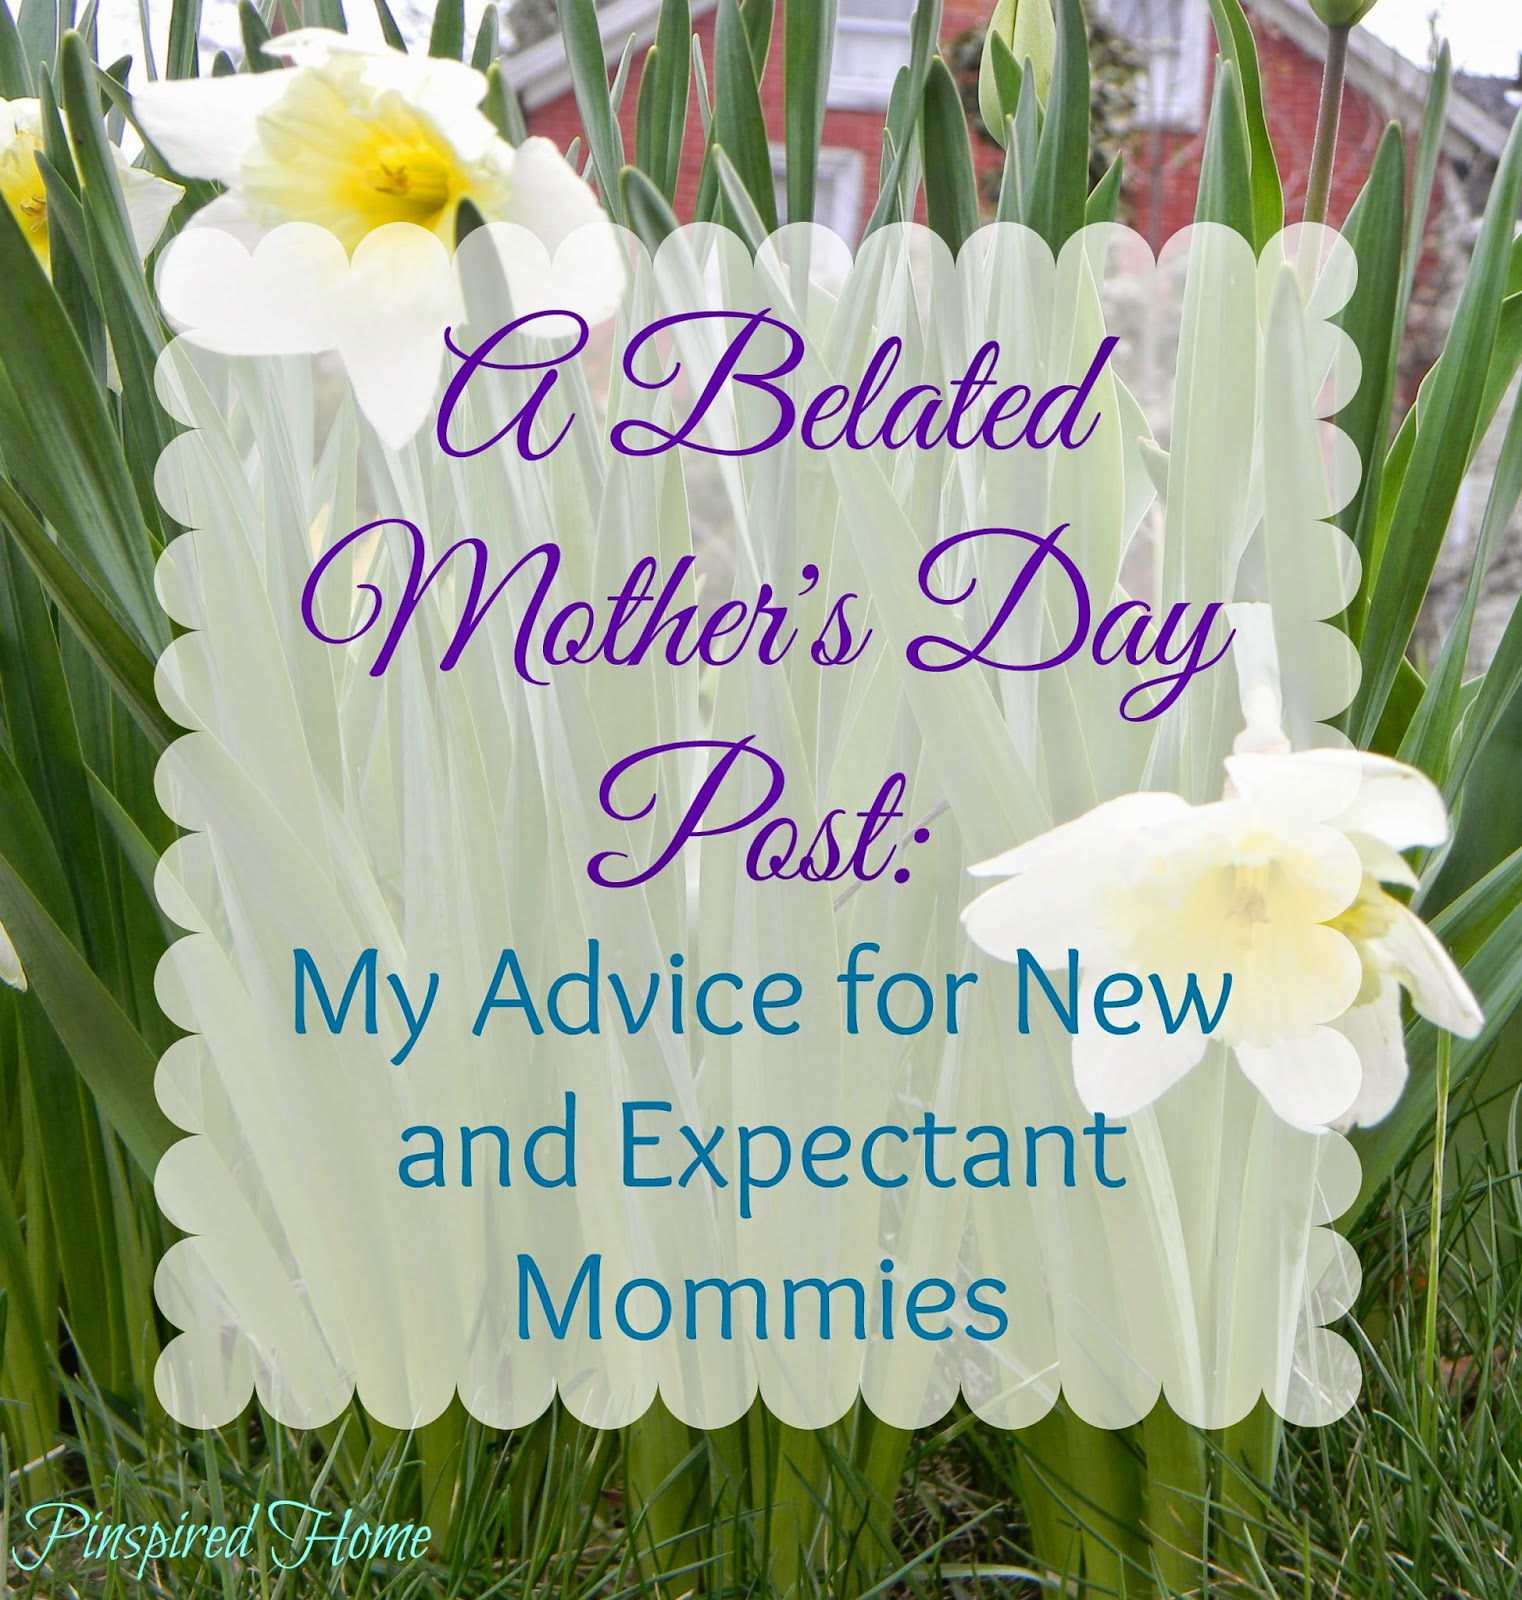 http://pinspiredhome.blogspot.com/2014/05/a-belated-mothers-day-post-my-advice.html